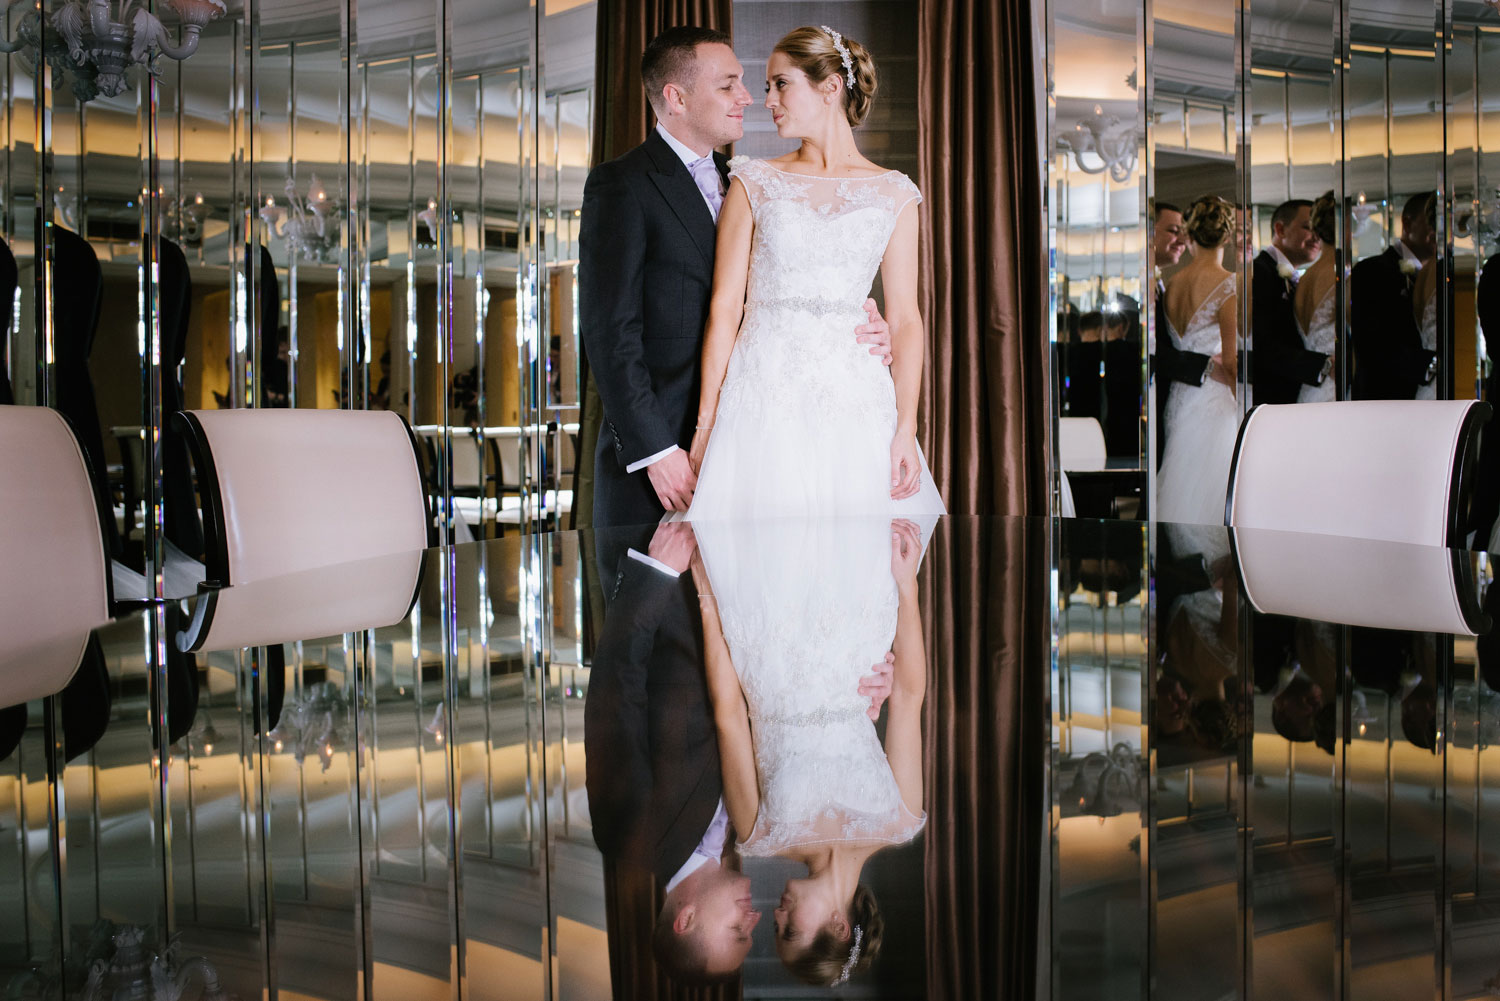 married atthe corinthia hotel